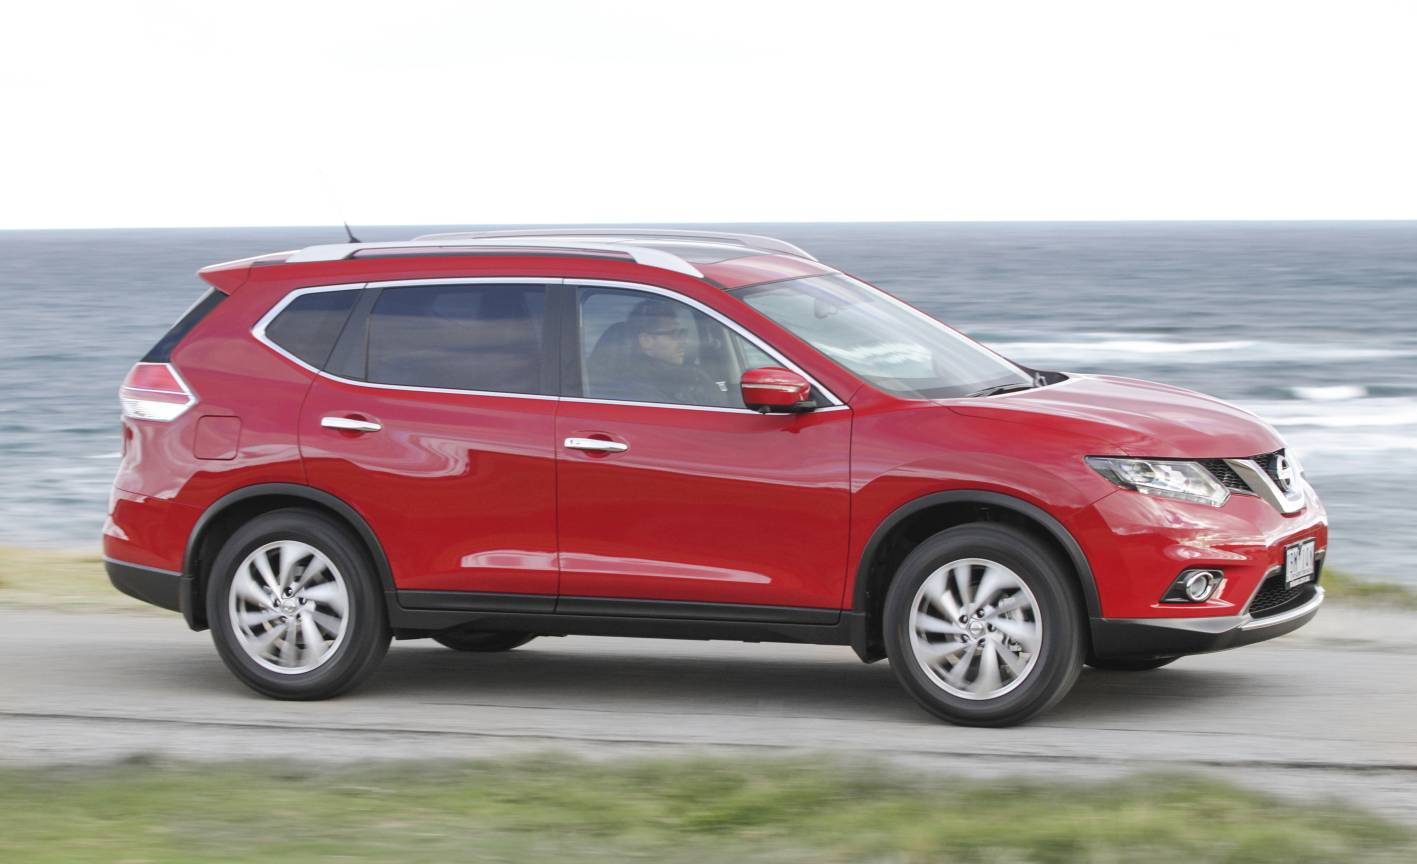 Nissan Cars News 2014 X TRAIL Pricing And Specification